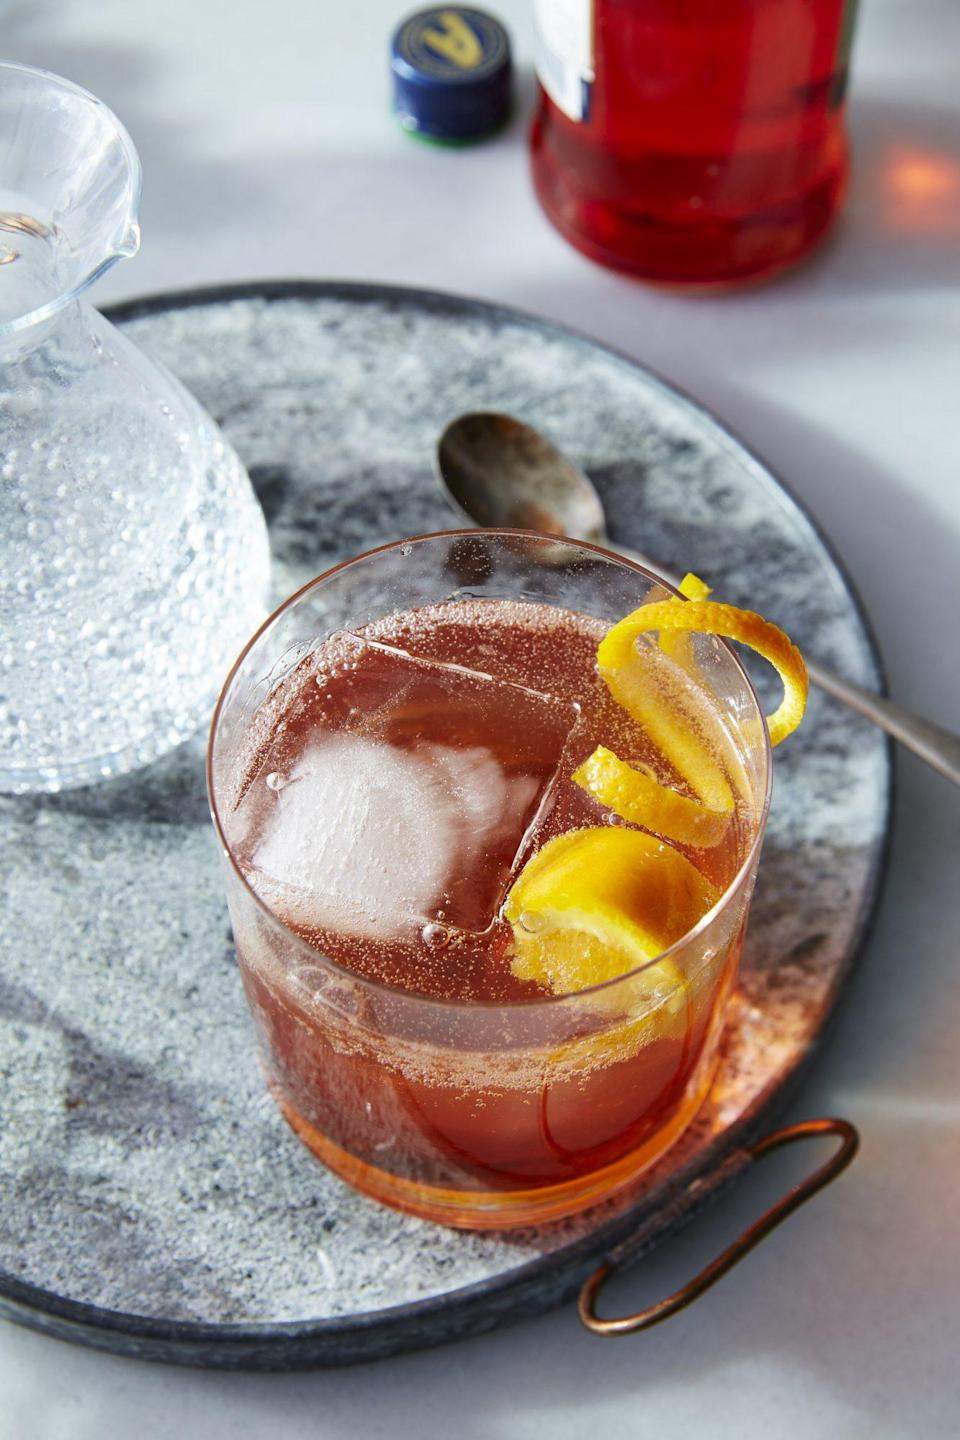 """<p><strong>Recipe: <a href=""""https://www.southernliving.com/recipes/aperol-bourbon-fizz-recipe"""" rel=""""nofollow noopener"""" target=""""_blank"""" data-ylk=""""slk:Aperol Bourbon Fizz"""" class=""""link rapid-noclick-resp"""">Aperol Bourbon Fizz</a></strong></p> <p>A little bit of aperol spritz, a little bit of Old-Fashioned, this recipe brings together two very different cocktails in a tasty new way. For bourbon lovers, it's a no-brainer for when you're feeling like a light sipper. Topo Chico's new Twist of Tangerine flavor would pair well with the citrusy ingredients. </p>"""